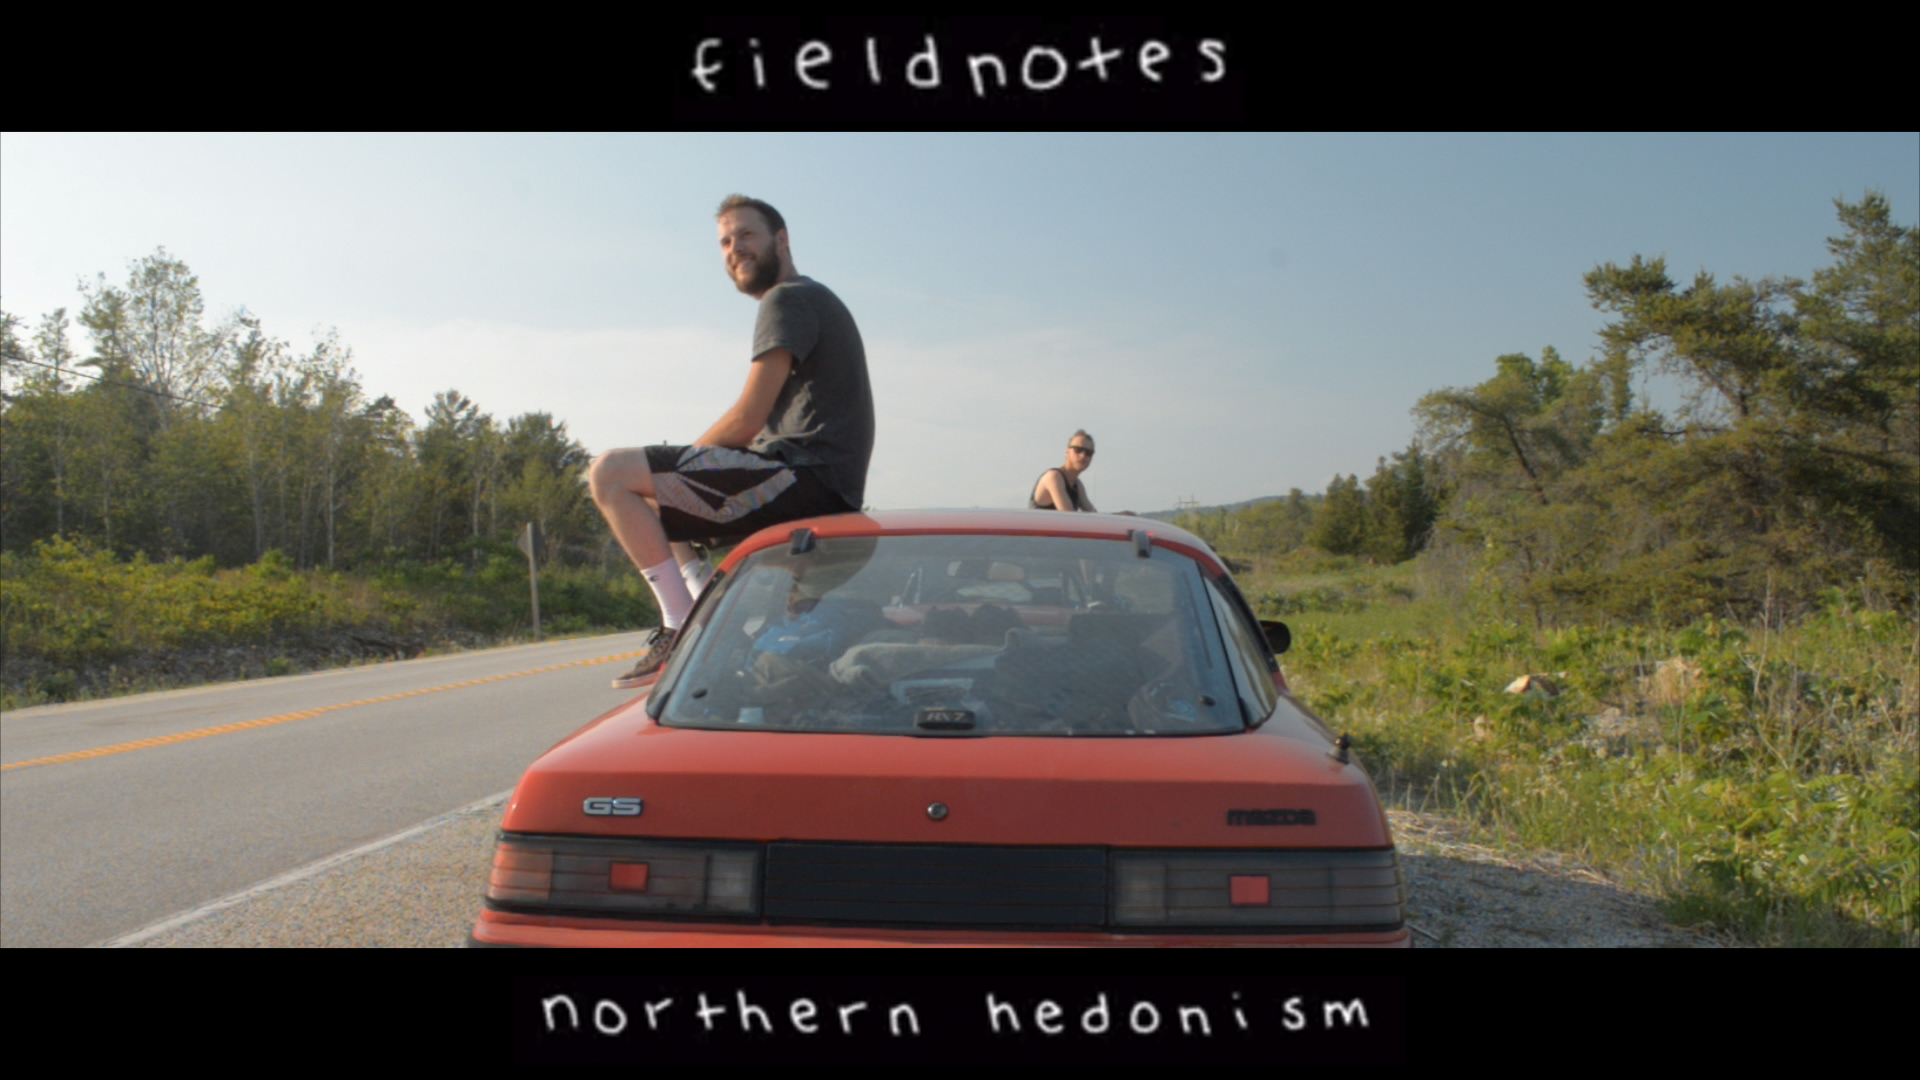 - FIELDNOTES - NORTHERN HEDONISMPart 3 in my series about life and friendships.